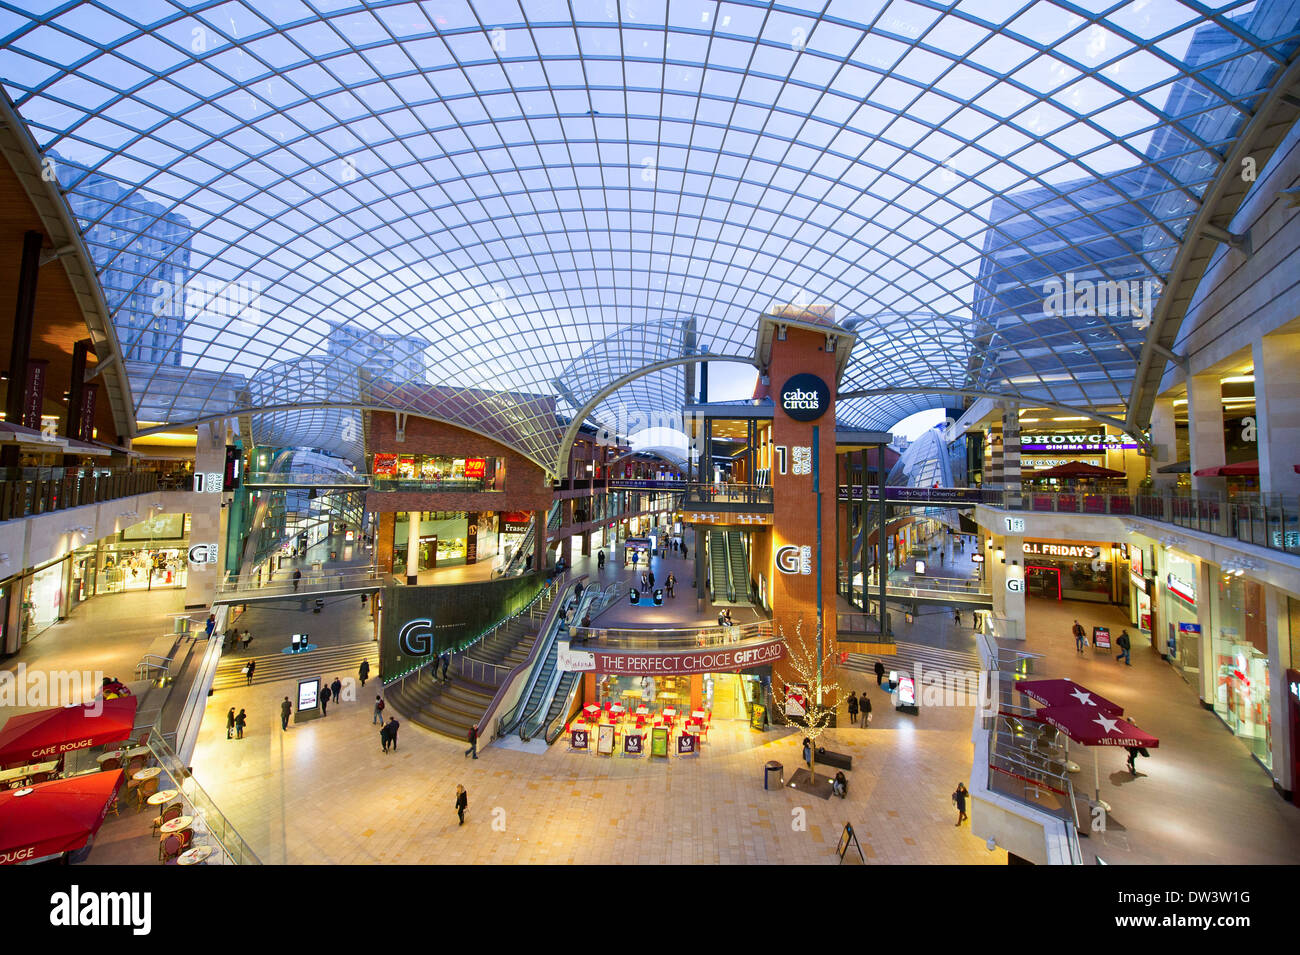 abe68df7160f Cabot circus shopping centre in Bristol Stock Photo: 67083004 - Alamy